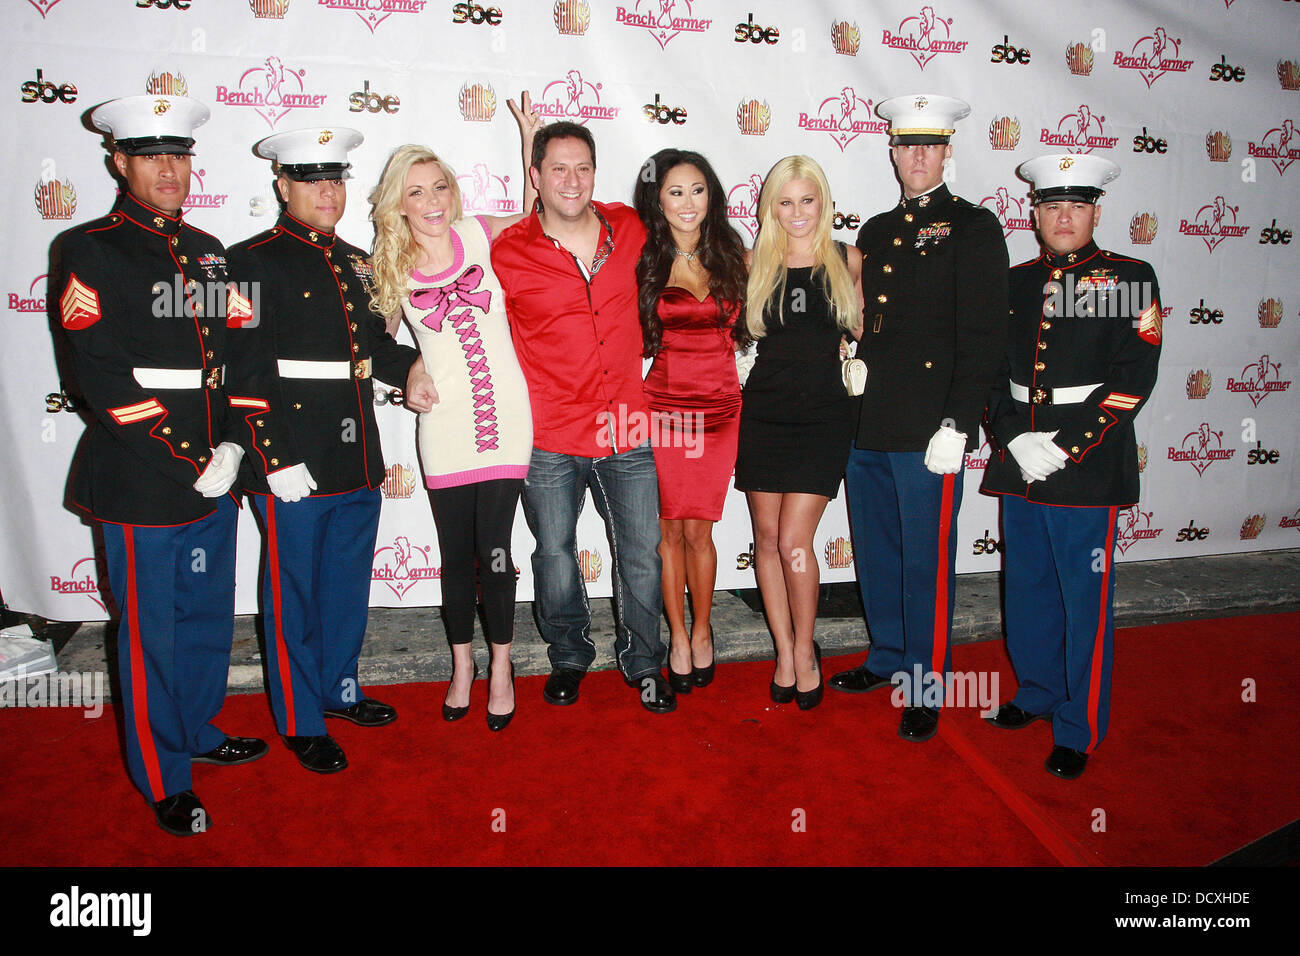 Playboy playmate Crystal Harris (left), Bench Warmer founder Brian Wallos, Candace Kita and Ciara Price (right) - Stock Image